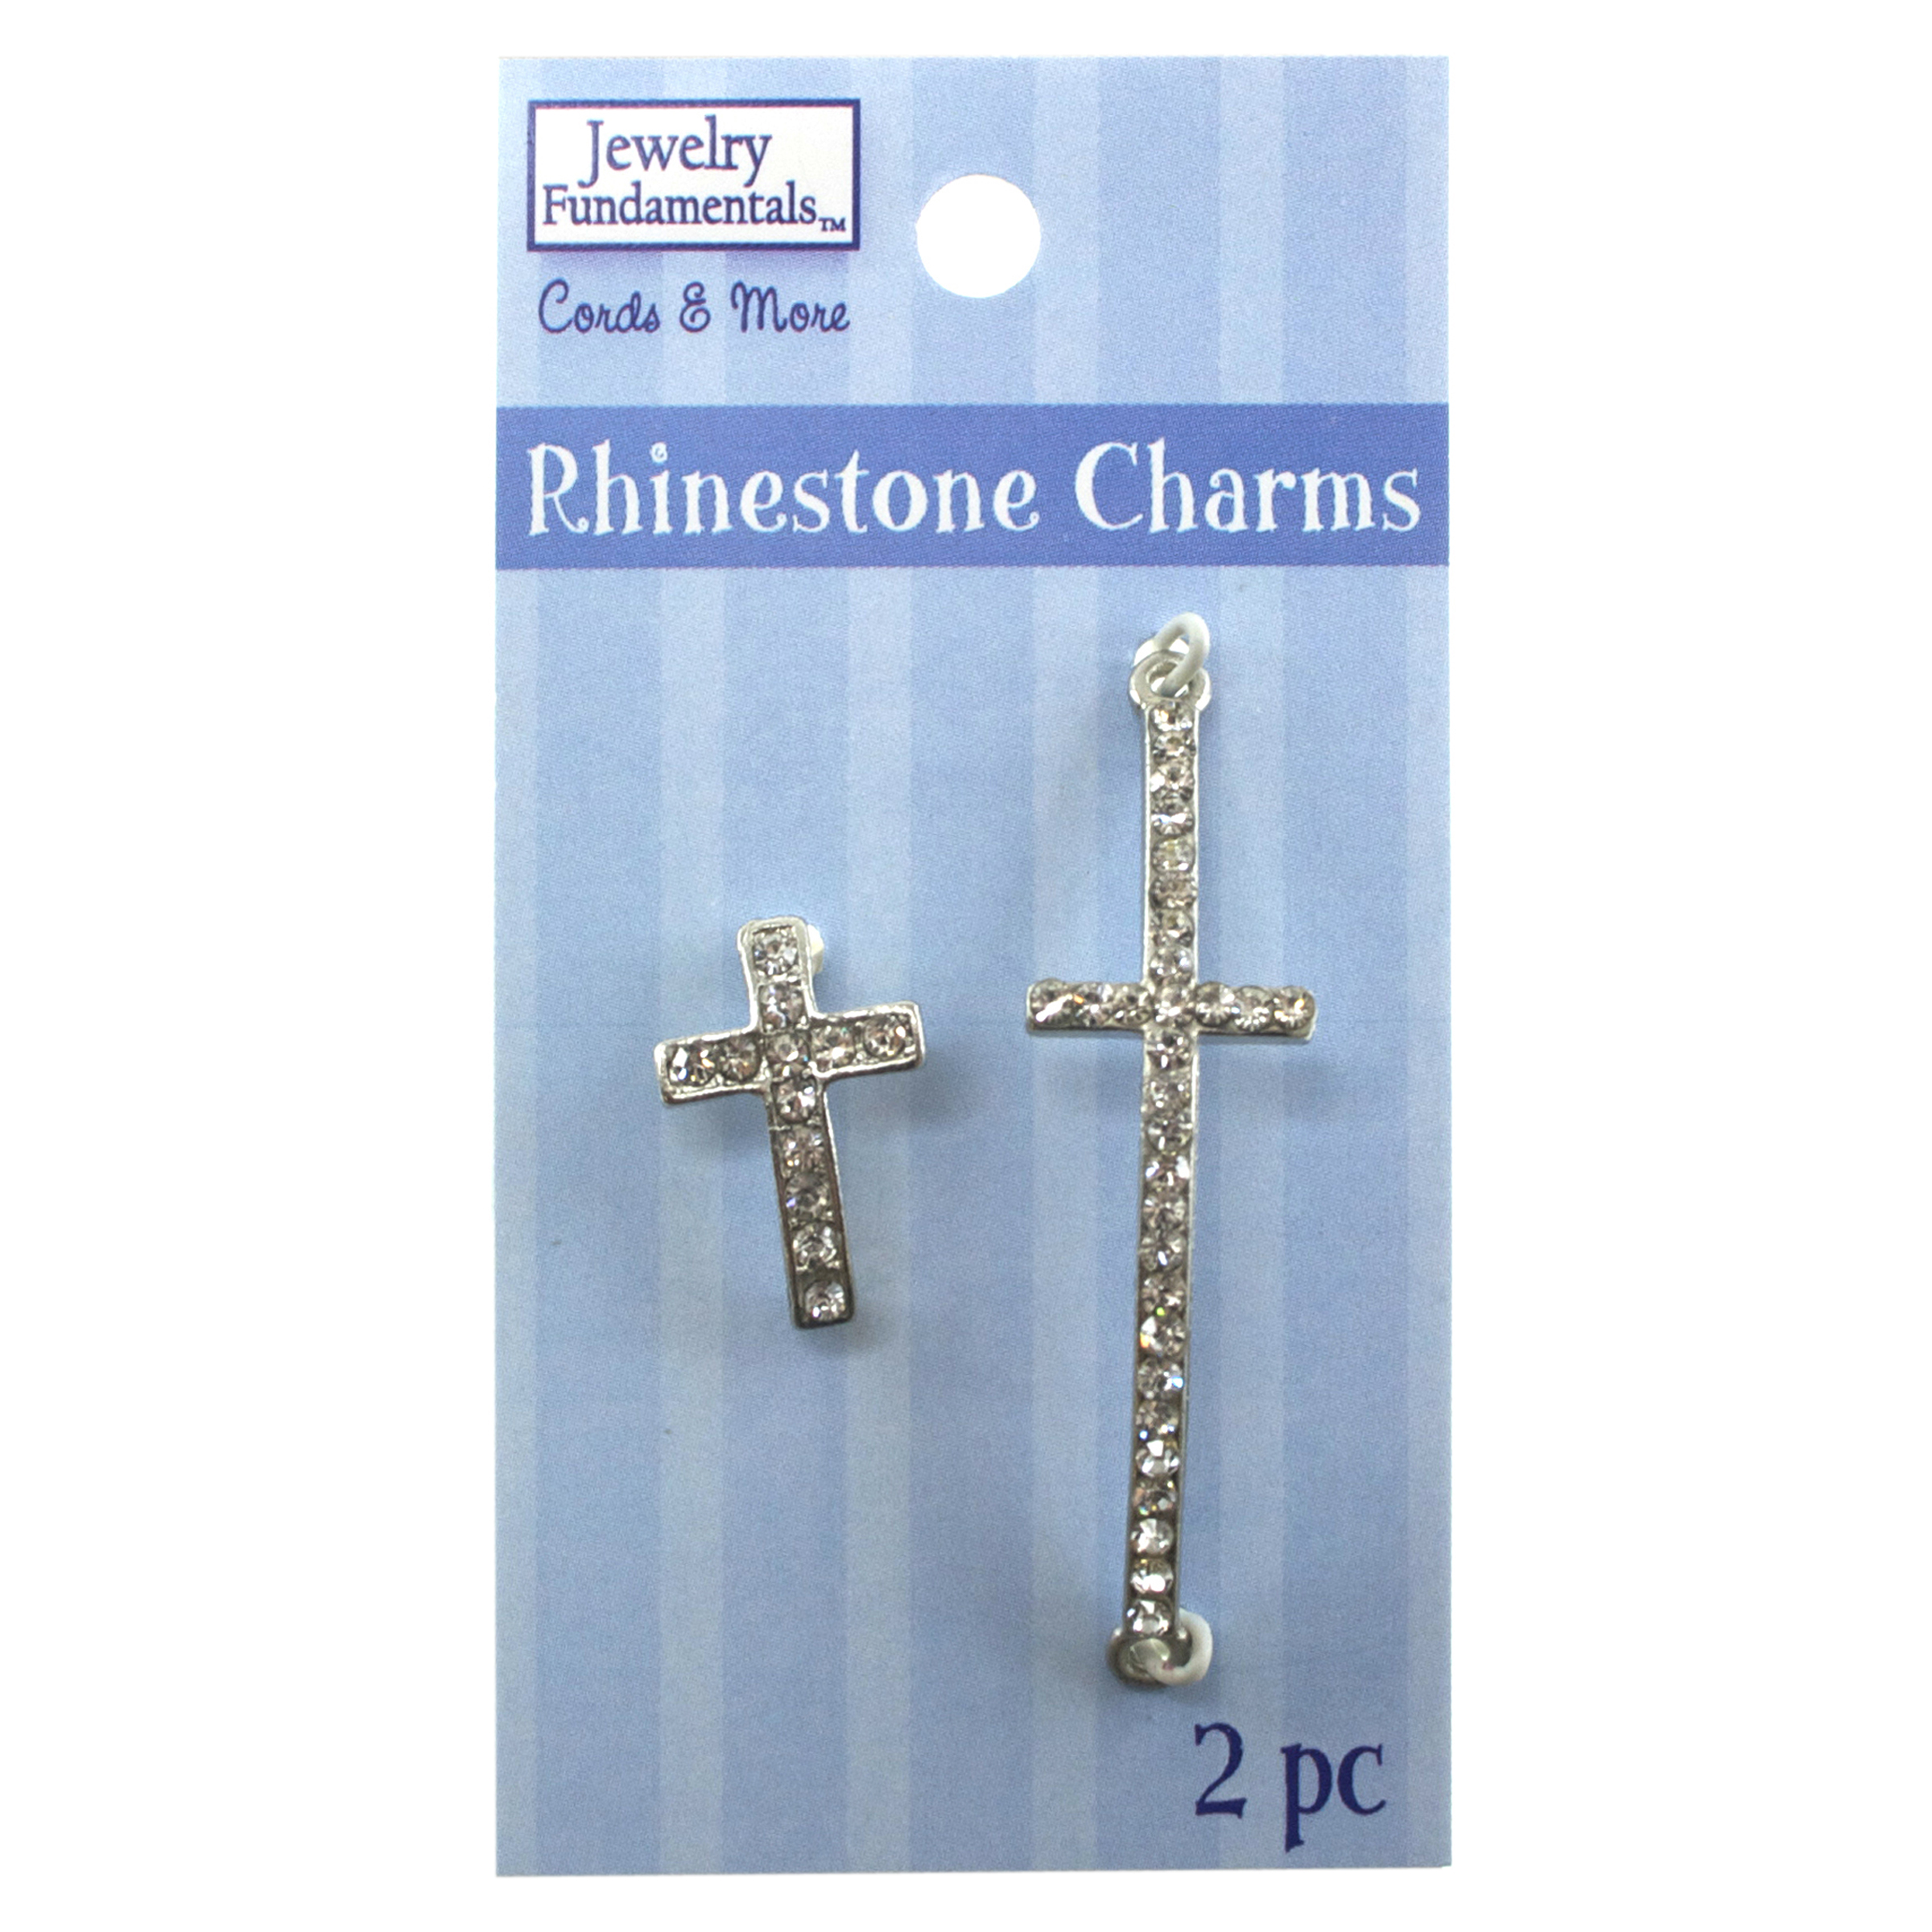 Jewelry Fundamentals Cords&More Rhinestone Charms - Rhinestone Crosses